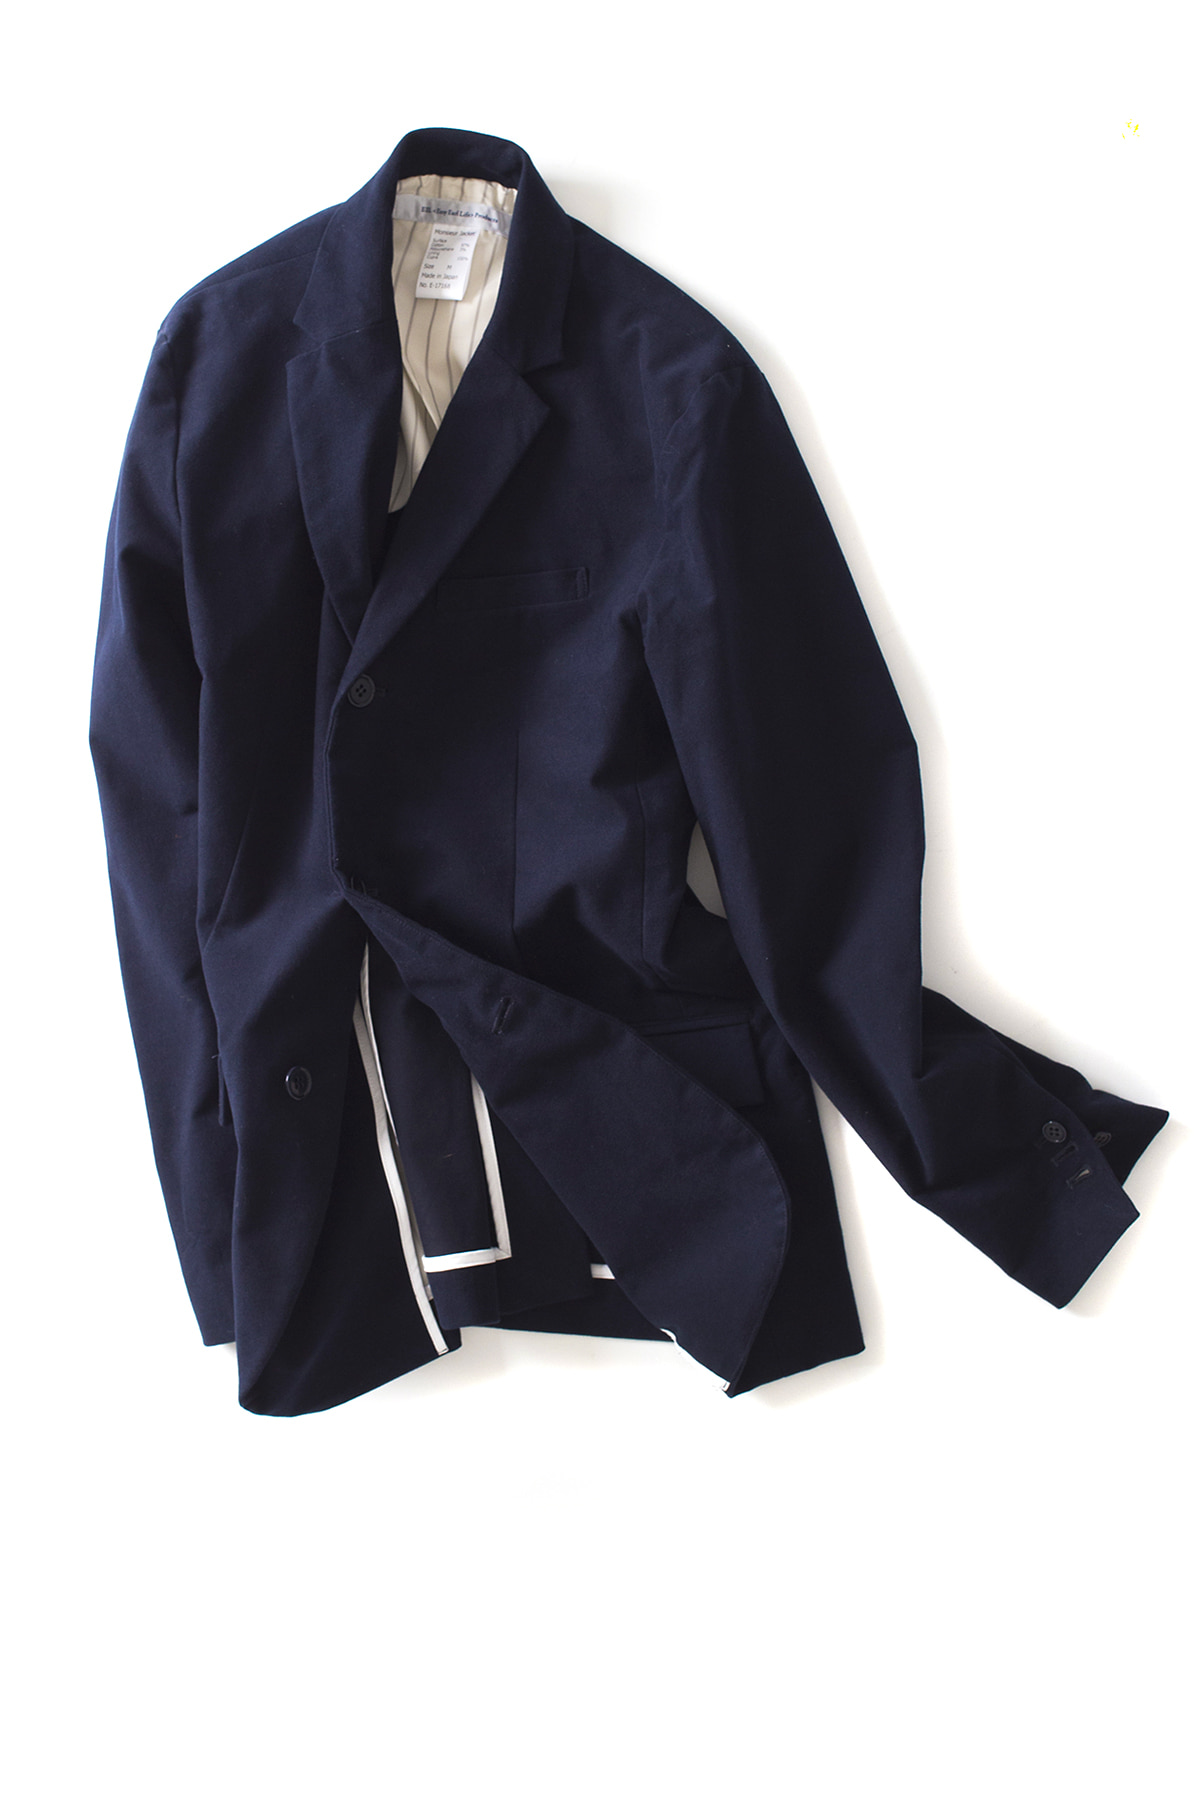 EEL : Monsieur Jacket (Navy)